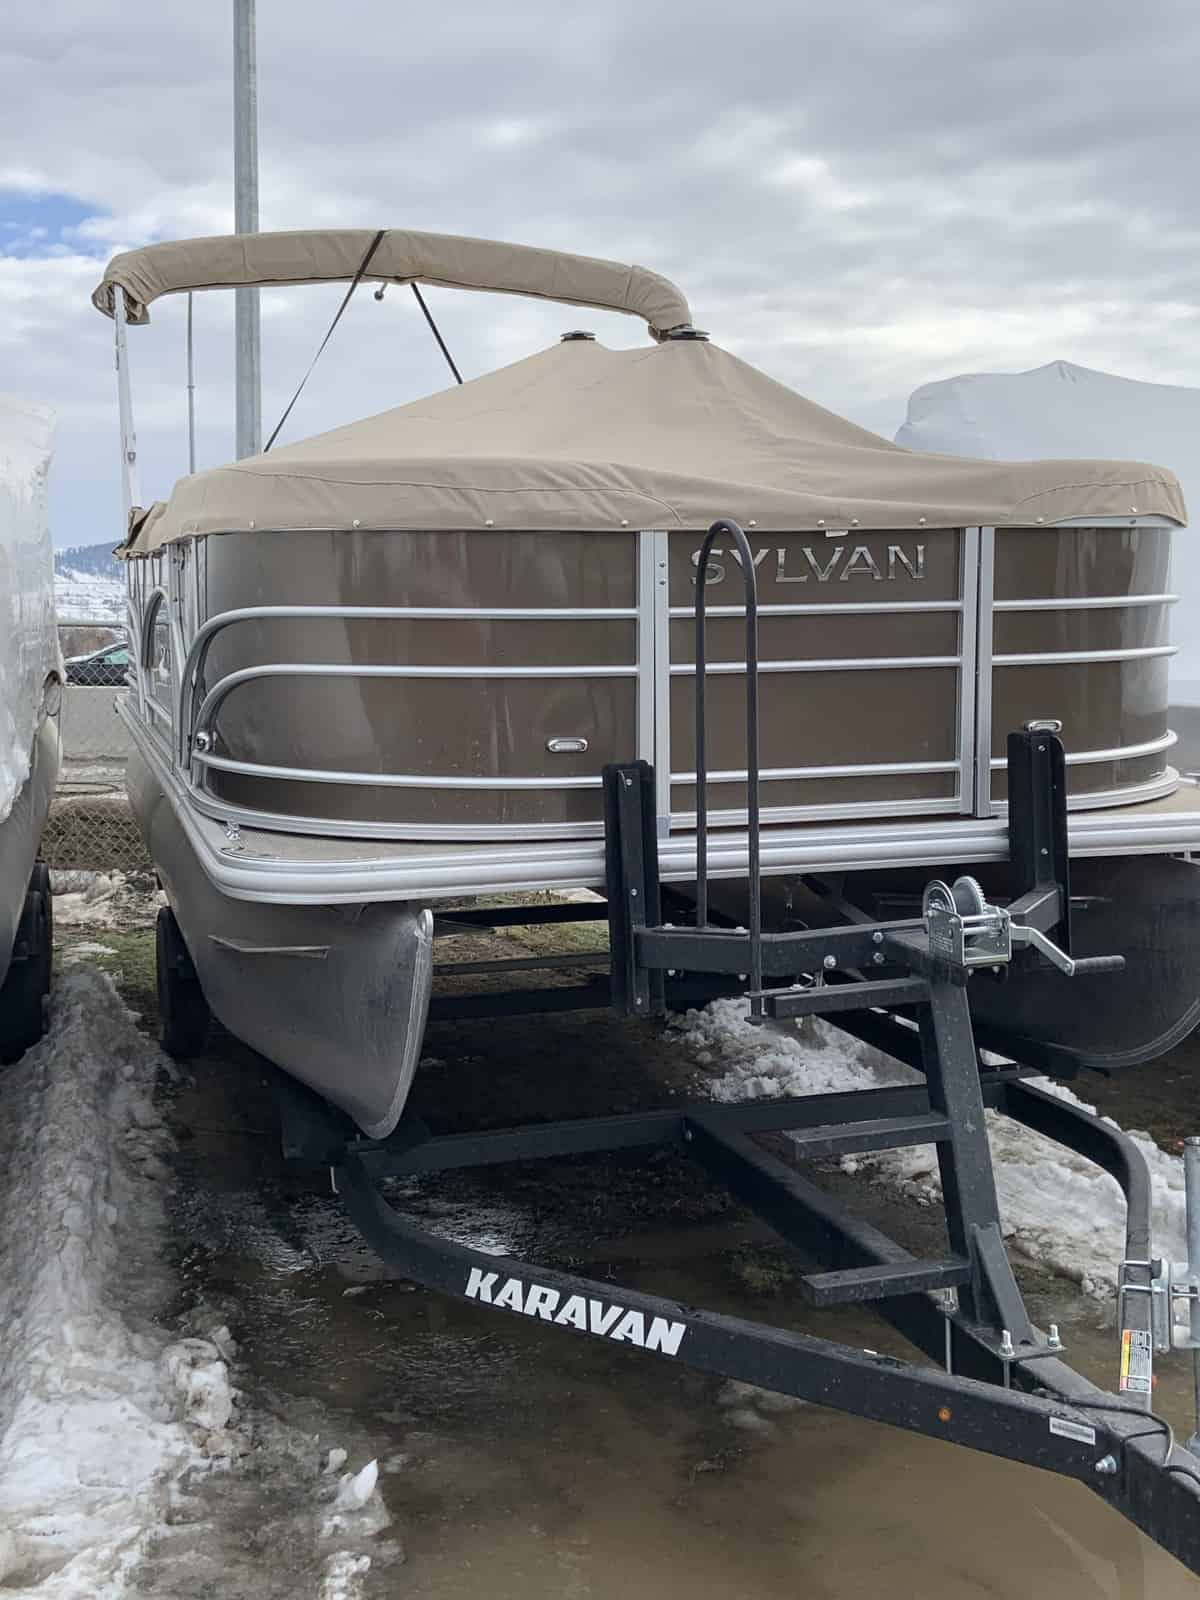 NEW 2019 Sylvan Mirage 8520 Cruise-n-Fish - Atlantis Marine